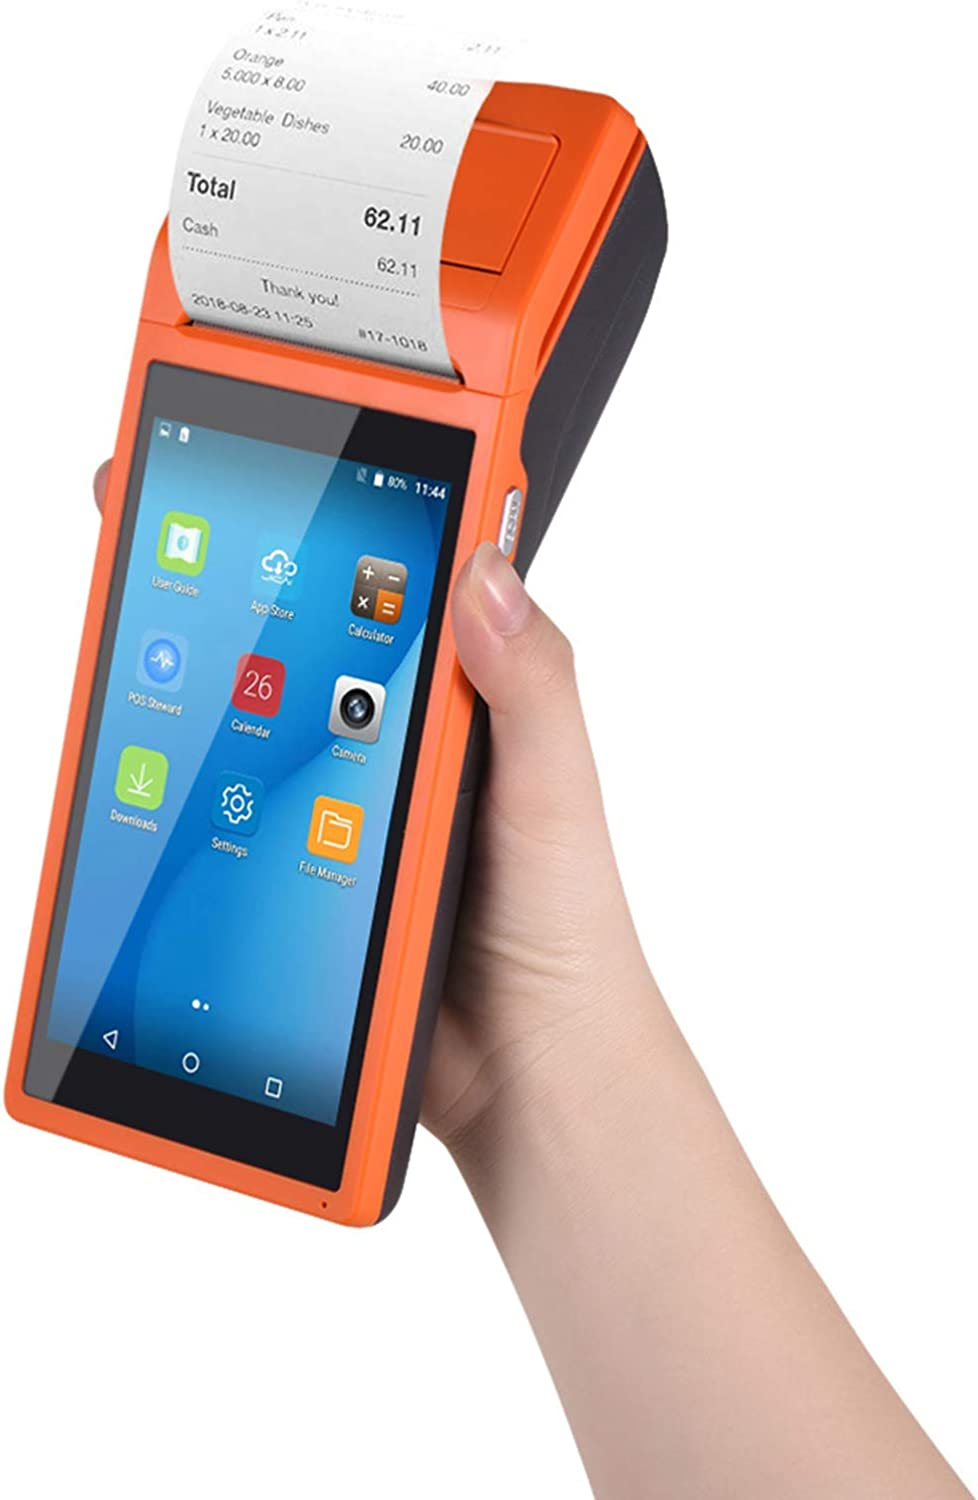 Aibecy1 All Ranking integrated 1st place in One specialty shop Handheld PDA Wirel Terminal Printer POS Smart